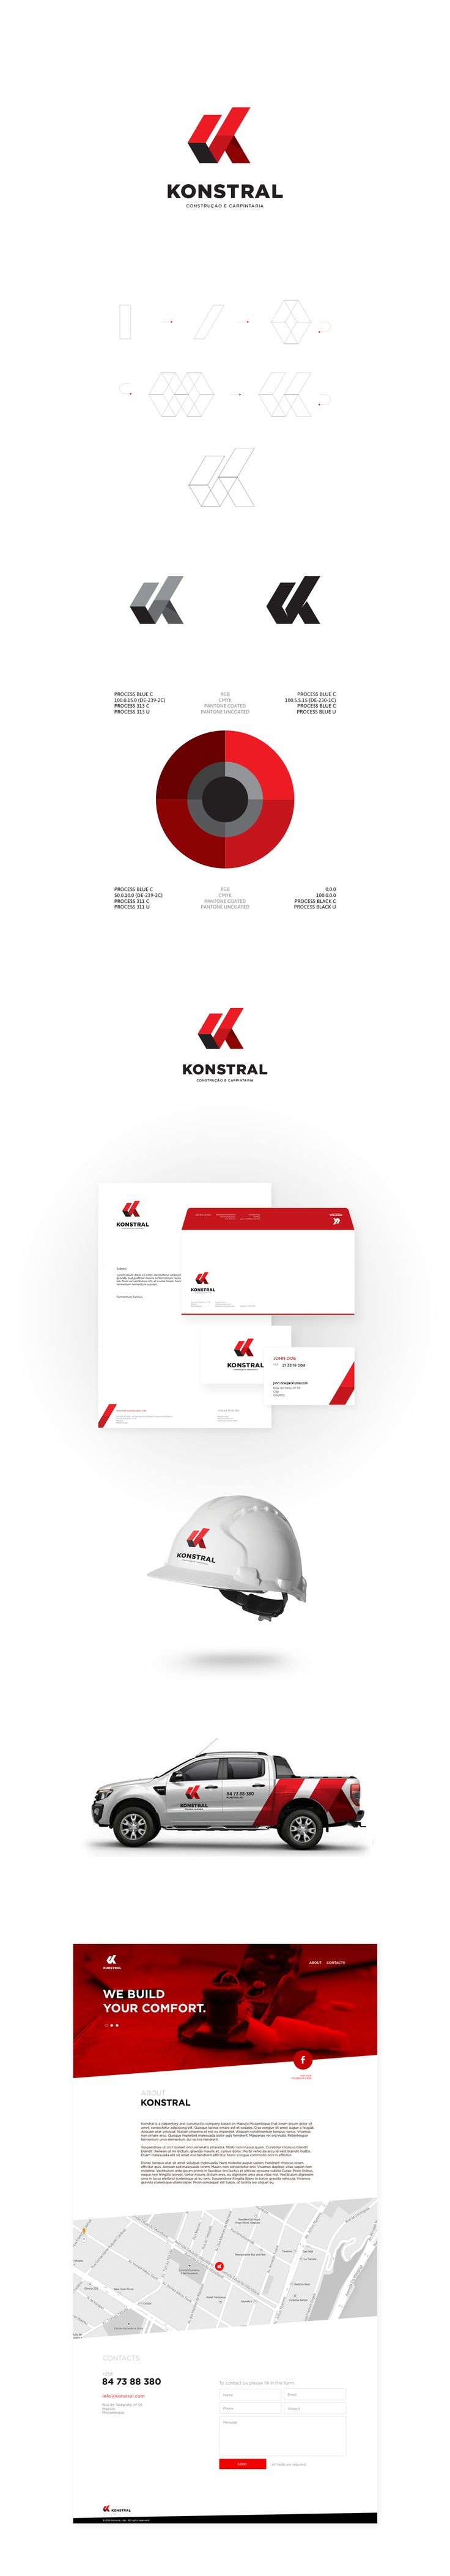 Logo proposal for construction company